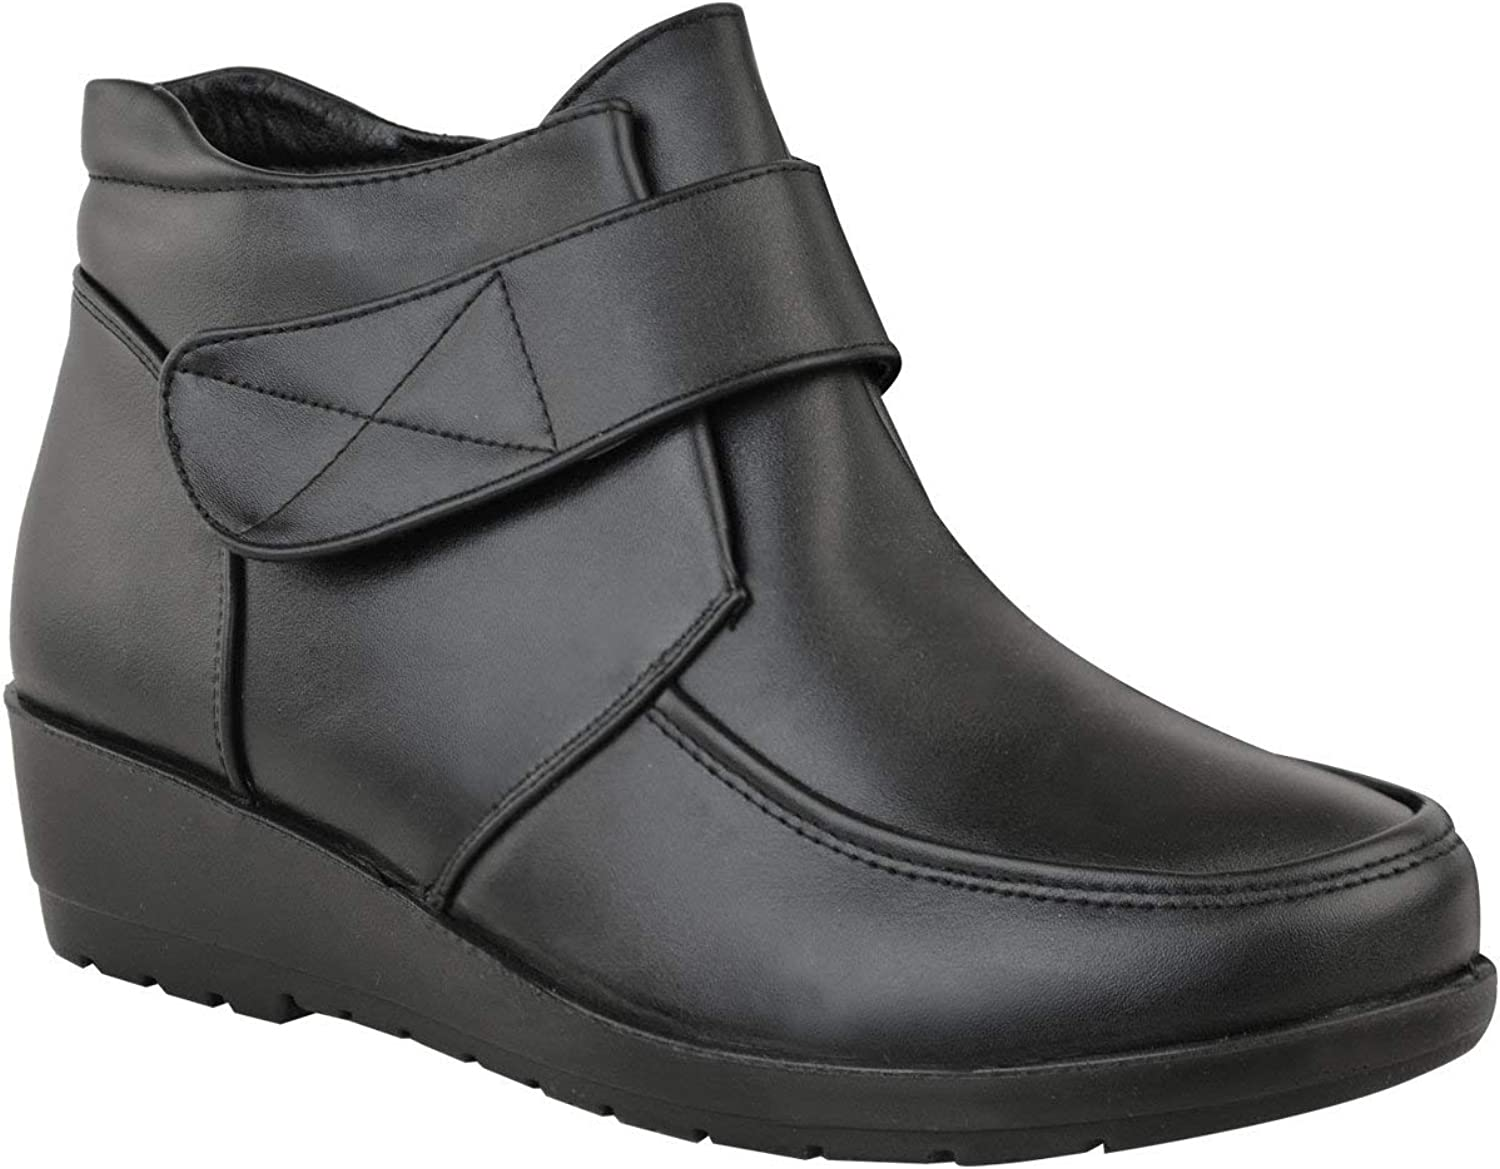 Ghapwe Womens Mid Wedge Heel Ankle Boots Comfort School Work Bar Size Black Faux Leather 10 M US